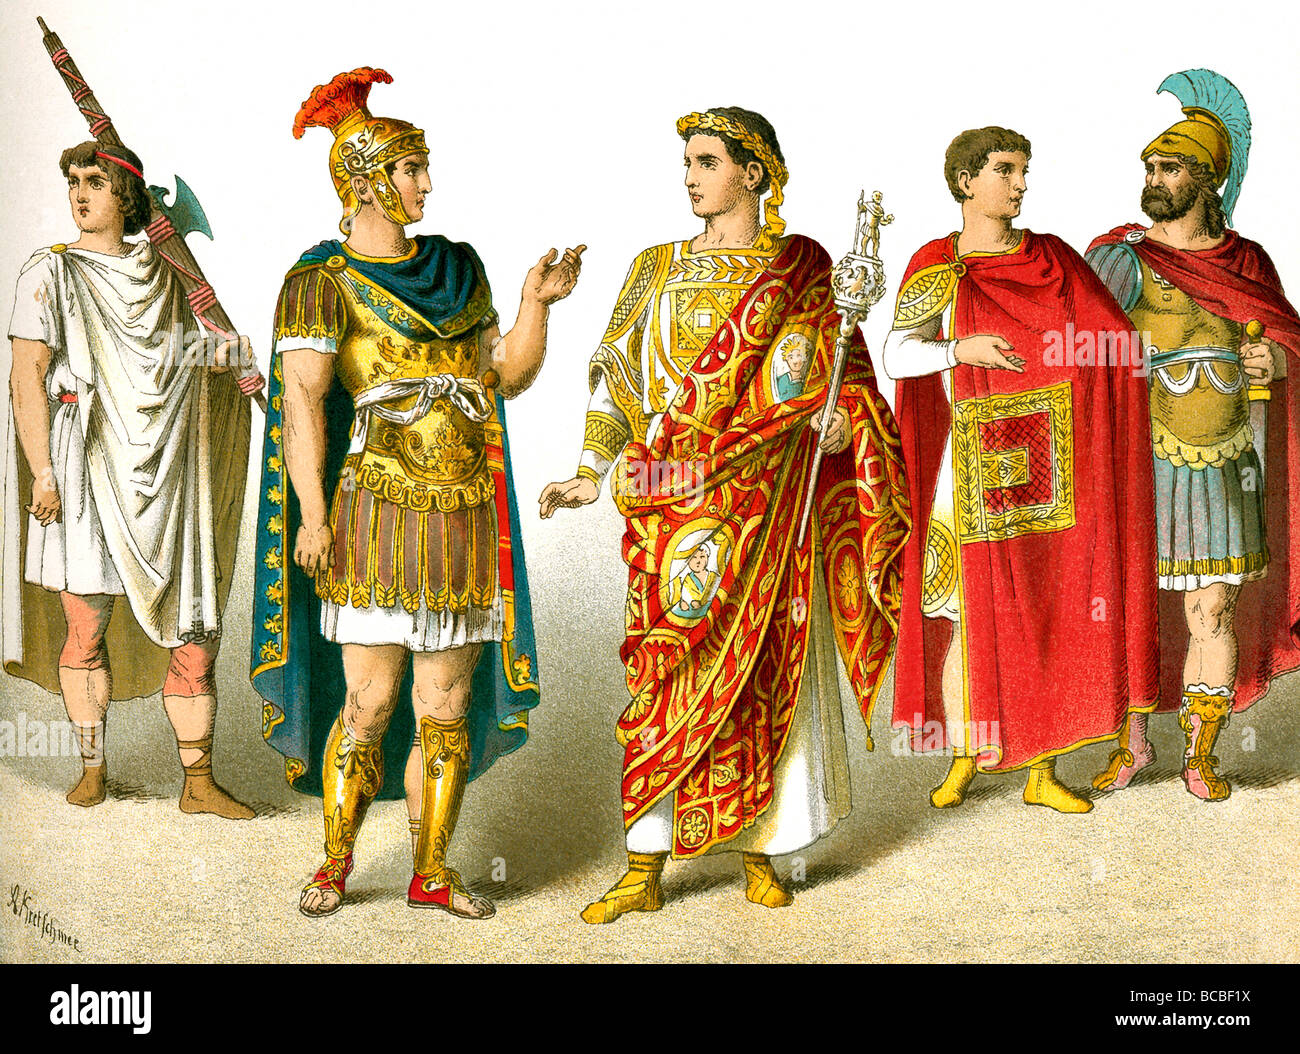 The illustrations depicts a Roman lictor, general, general celebrating a triumph, magistrate, officer. - Stock Image